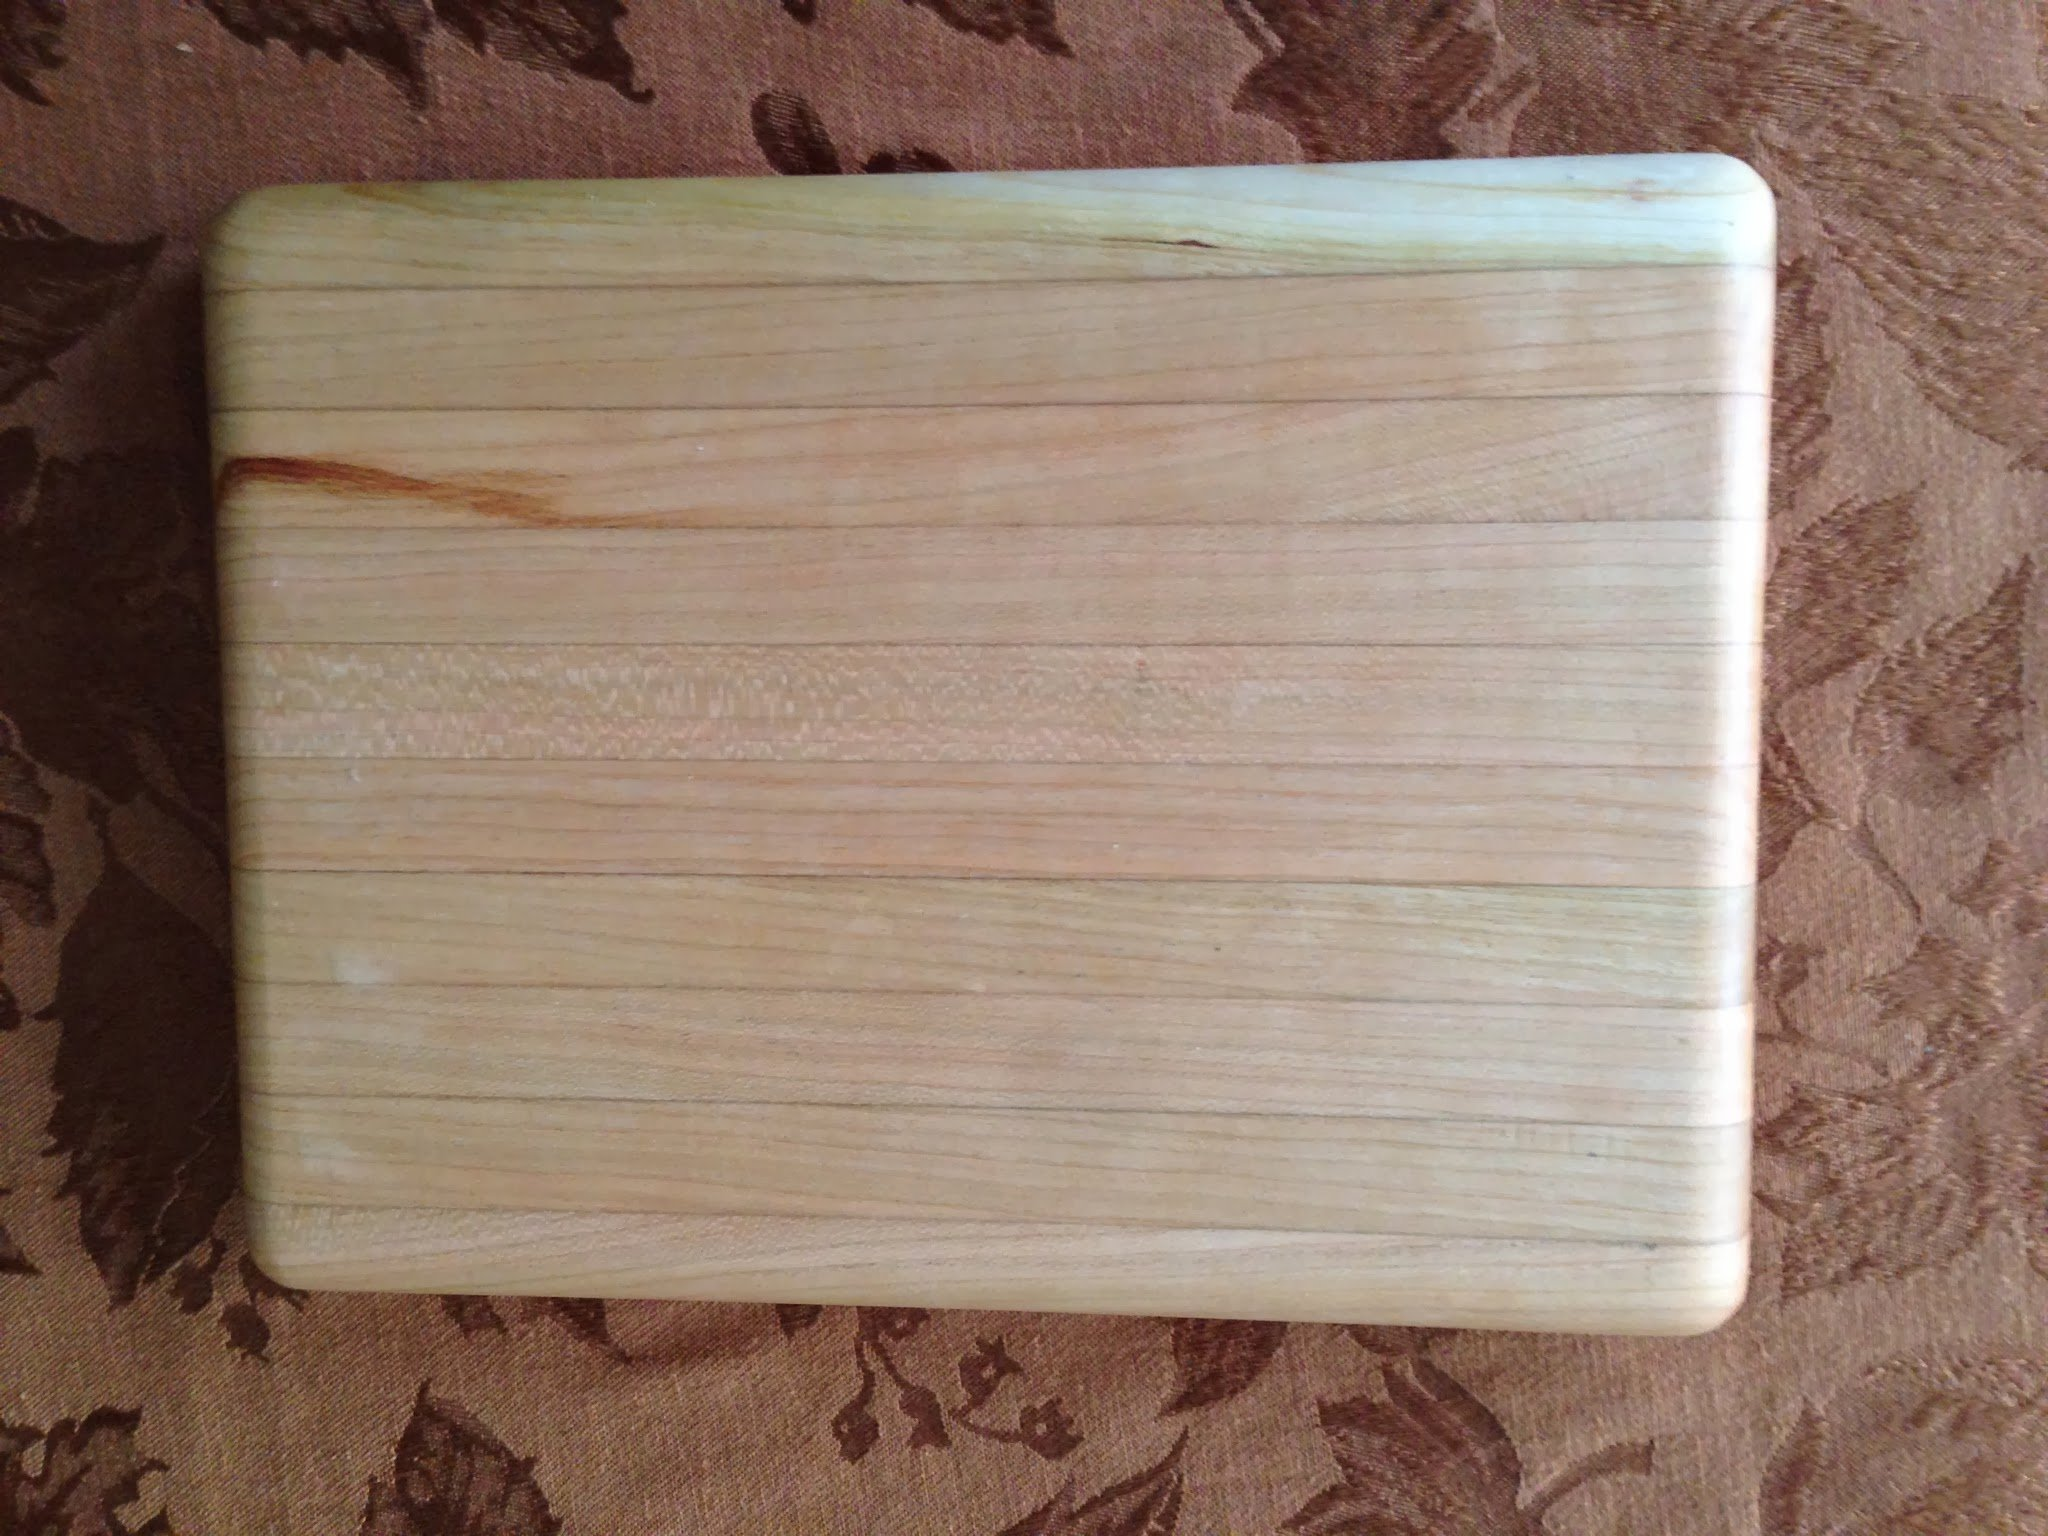 My very first cutting board